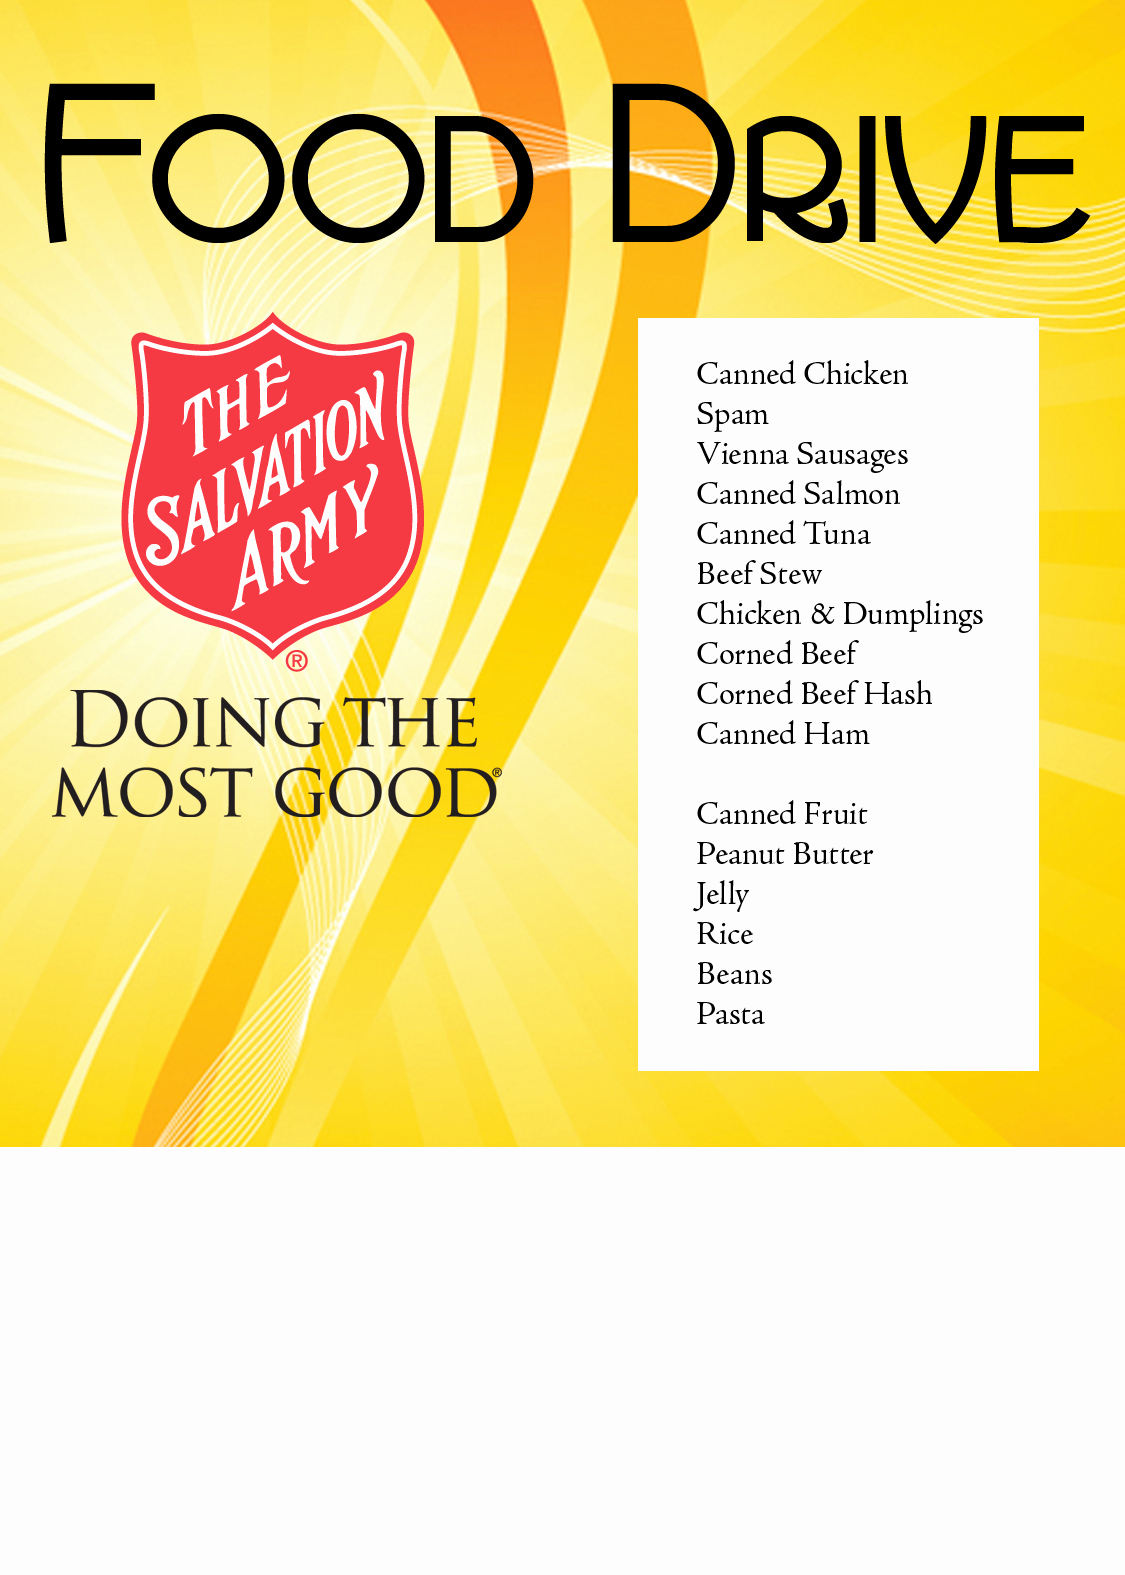 Canned Food Drive Flyer Best Of the Salvation Army – Naples Immokalee and Naples Food